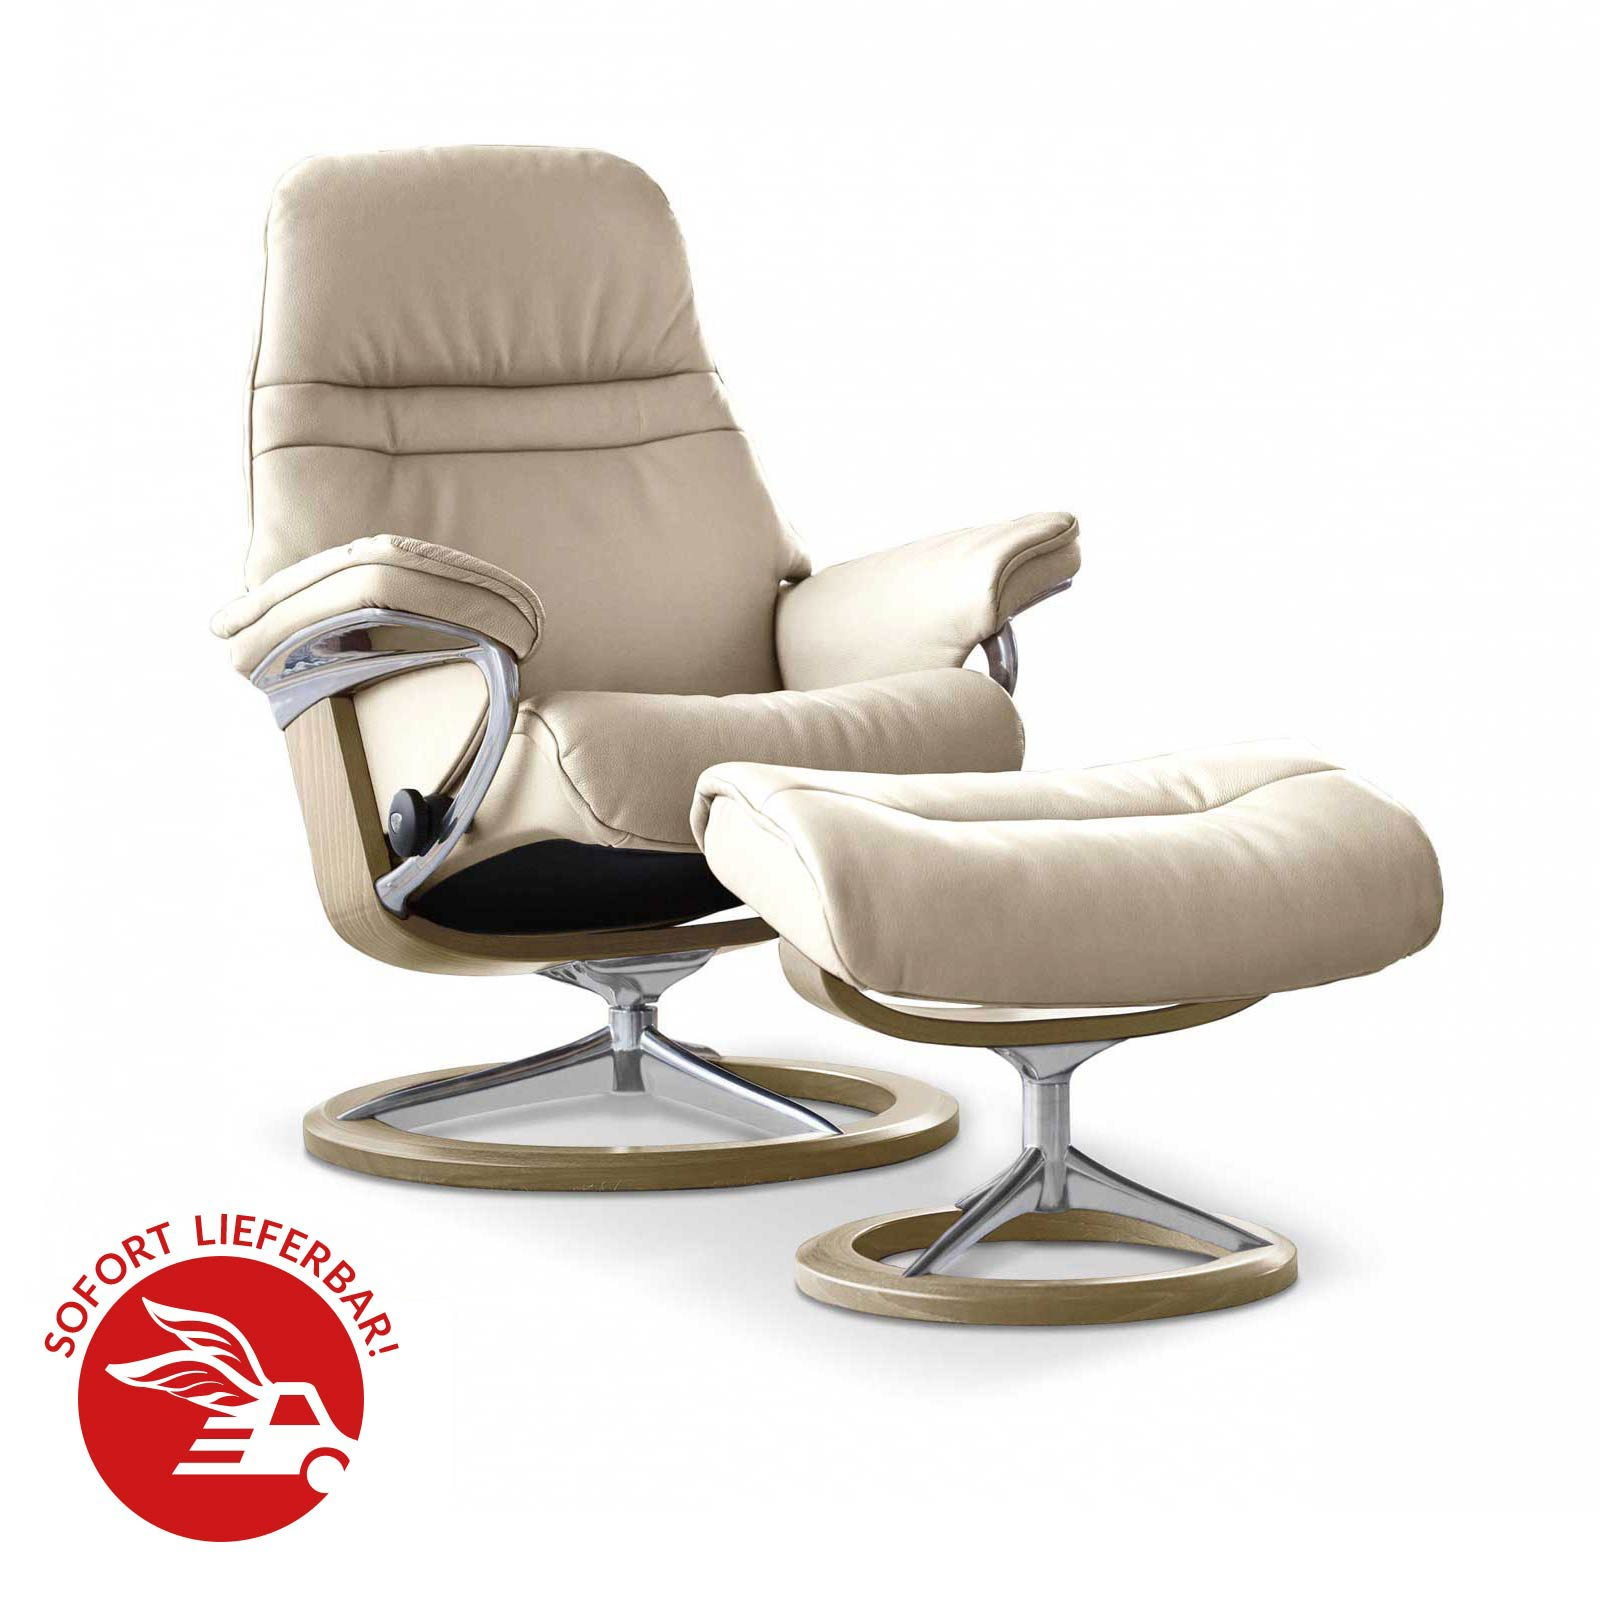 Stressless Sessel Testberichte Angebot: Stressless Sessel Sunrise Signature Mit Hocker Fog